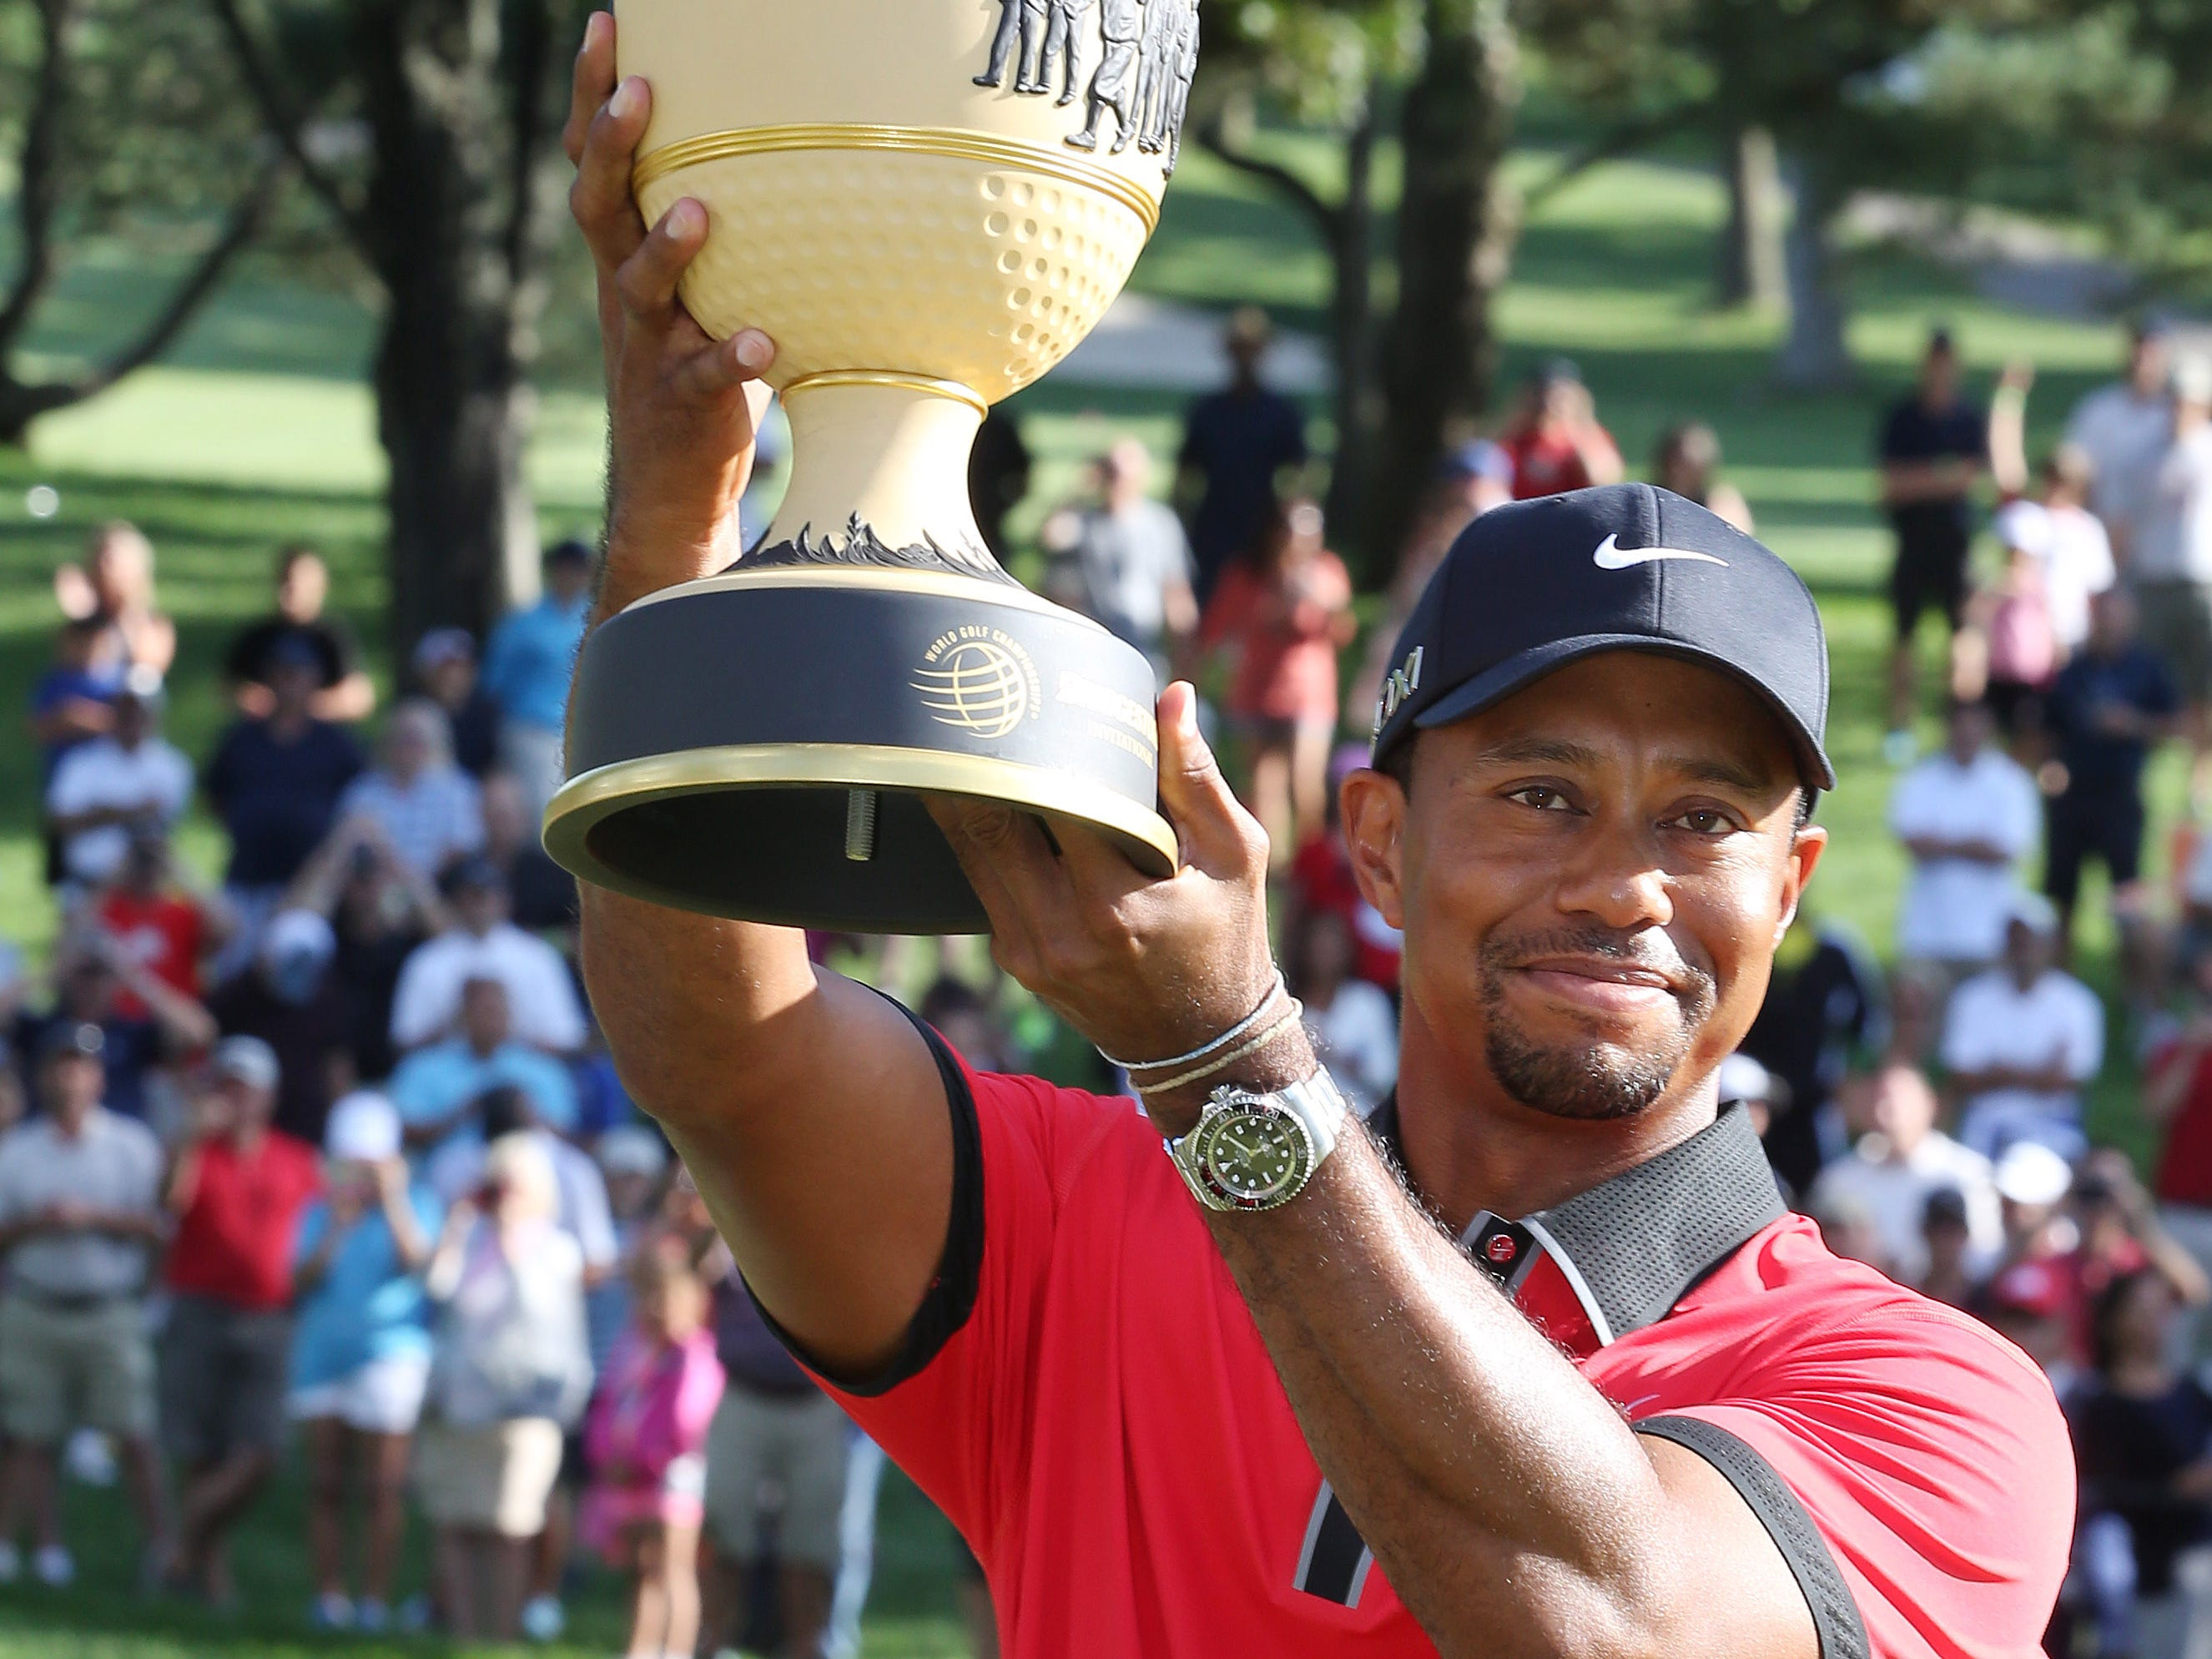 In August 2013,  Tiger Woods won  the World Golf Championships - Bridgestone Invitational at Firestone Country Club. It's his 79th PGA Tour win.